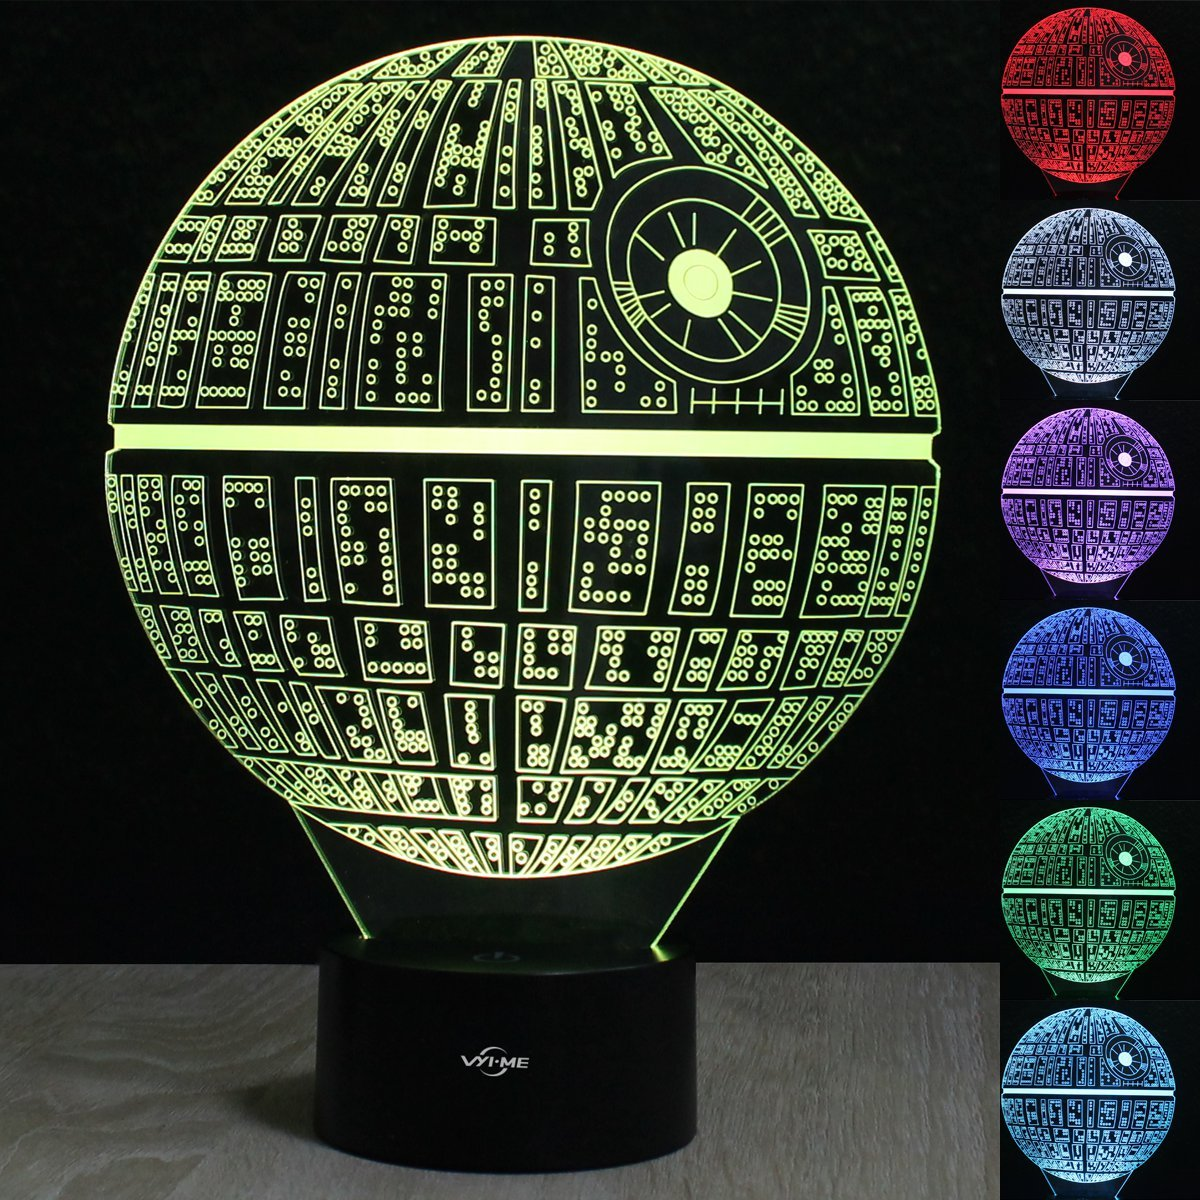 Amazon.com: Star Wars Death Star 3D illusion Night light LED 7 color change desk  table lamp Lighting Decor Gadget Lamp Awesome Gift: Home Improvement - Amazon.com: Star Wars Death Star 3D Illusion Night Light LED 7